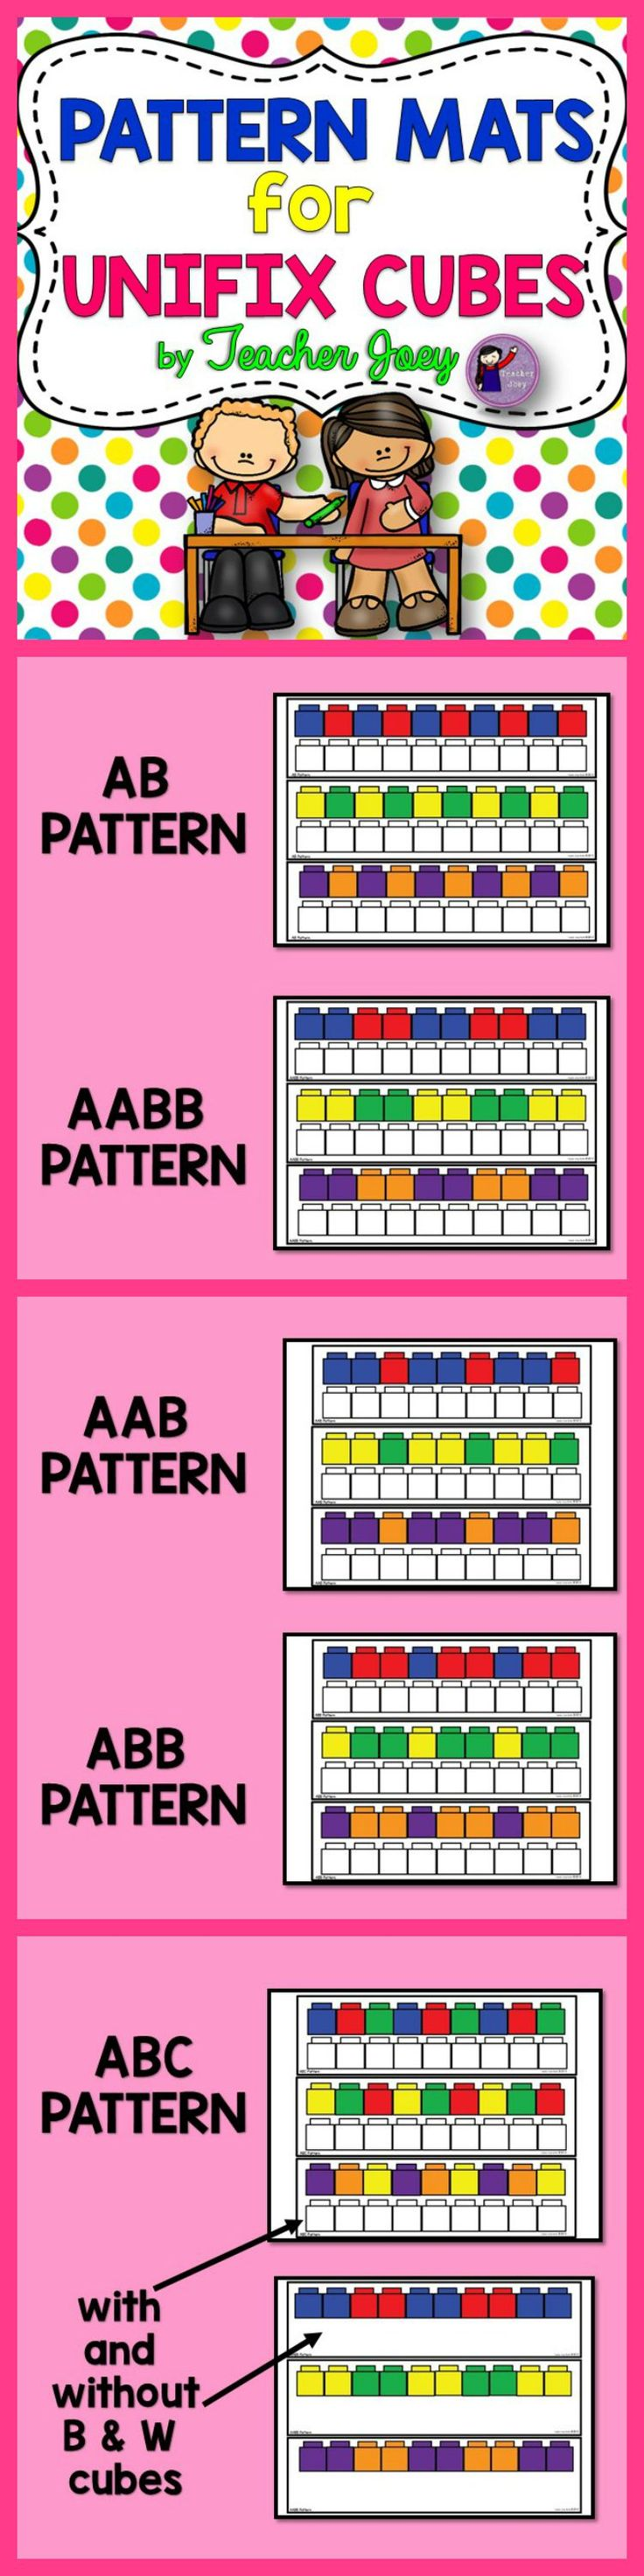 Pattern Mats #Unifix Cubes #teacherspayteachers #backtoschool #backtoschool 2015  Recognizing and making patterns is a fundamental skill that should be mastered by students to develop good literacy and numeracy skills.  This unit is composed of 5 sets of patterns (with three strips each) suitable for Pre-K, Kindergarten and 1st Grade students who are beginning or needing practice in recognizing and making patterns.